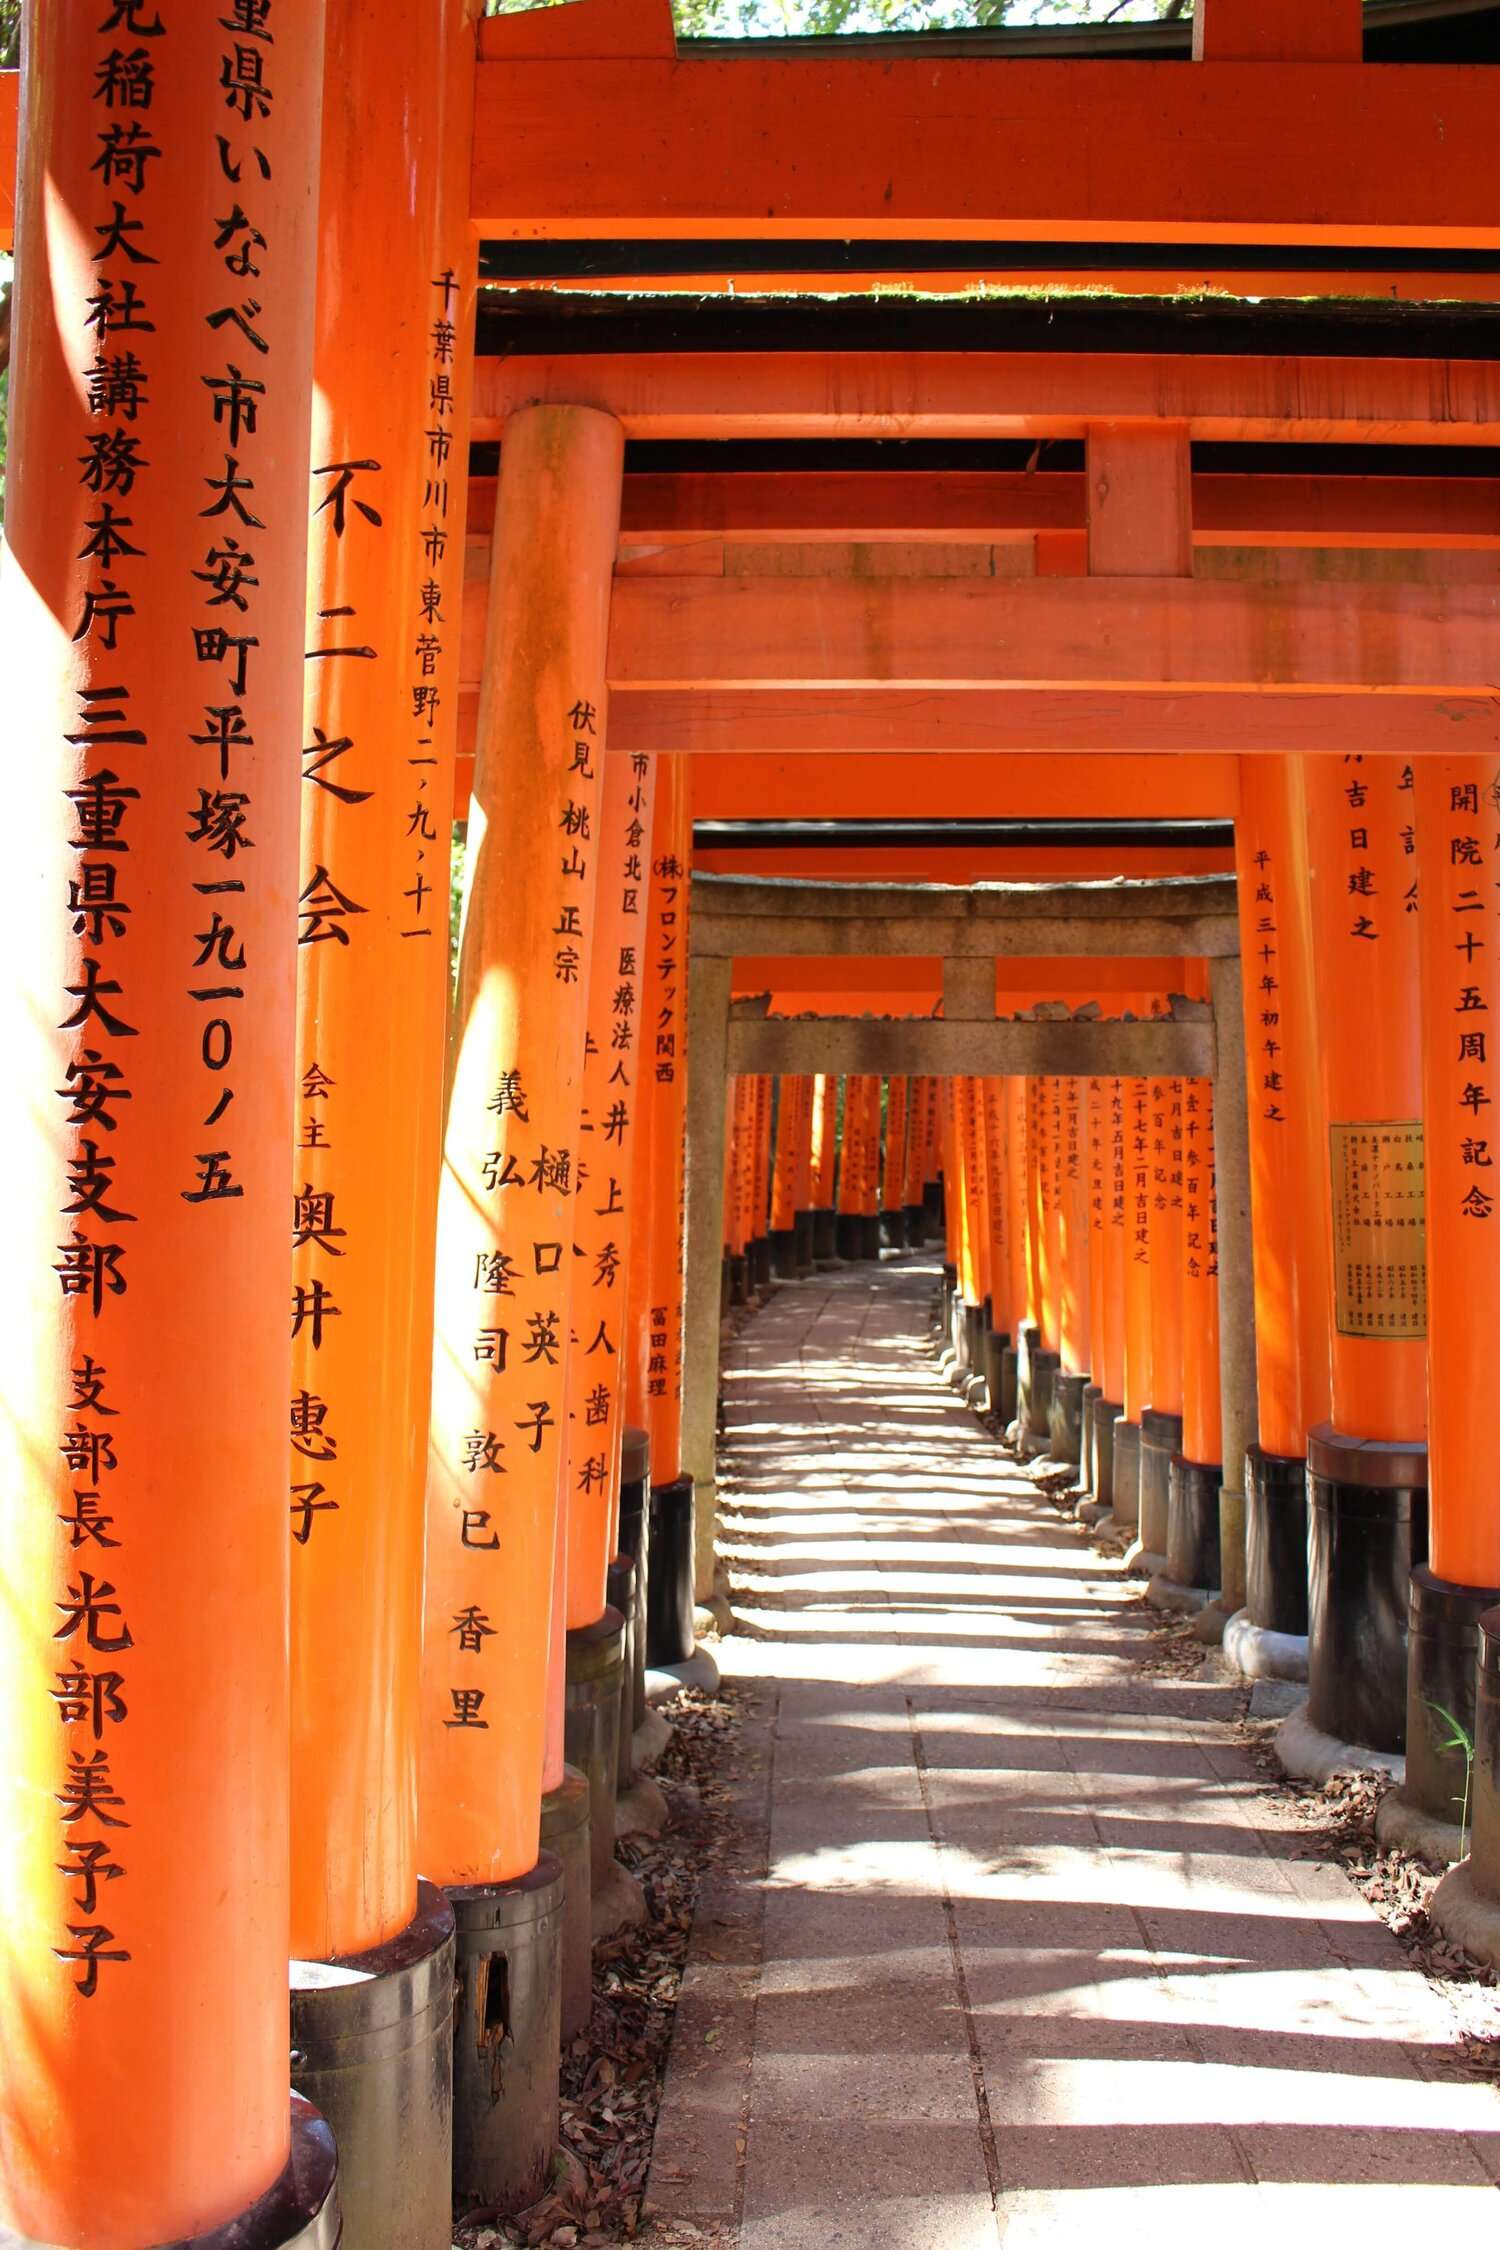 tunnel of orange arched shrines at a temple in Kyoto